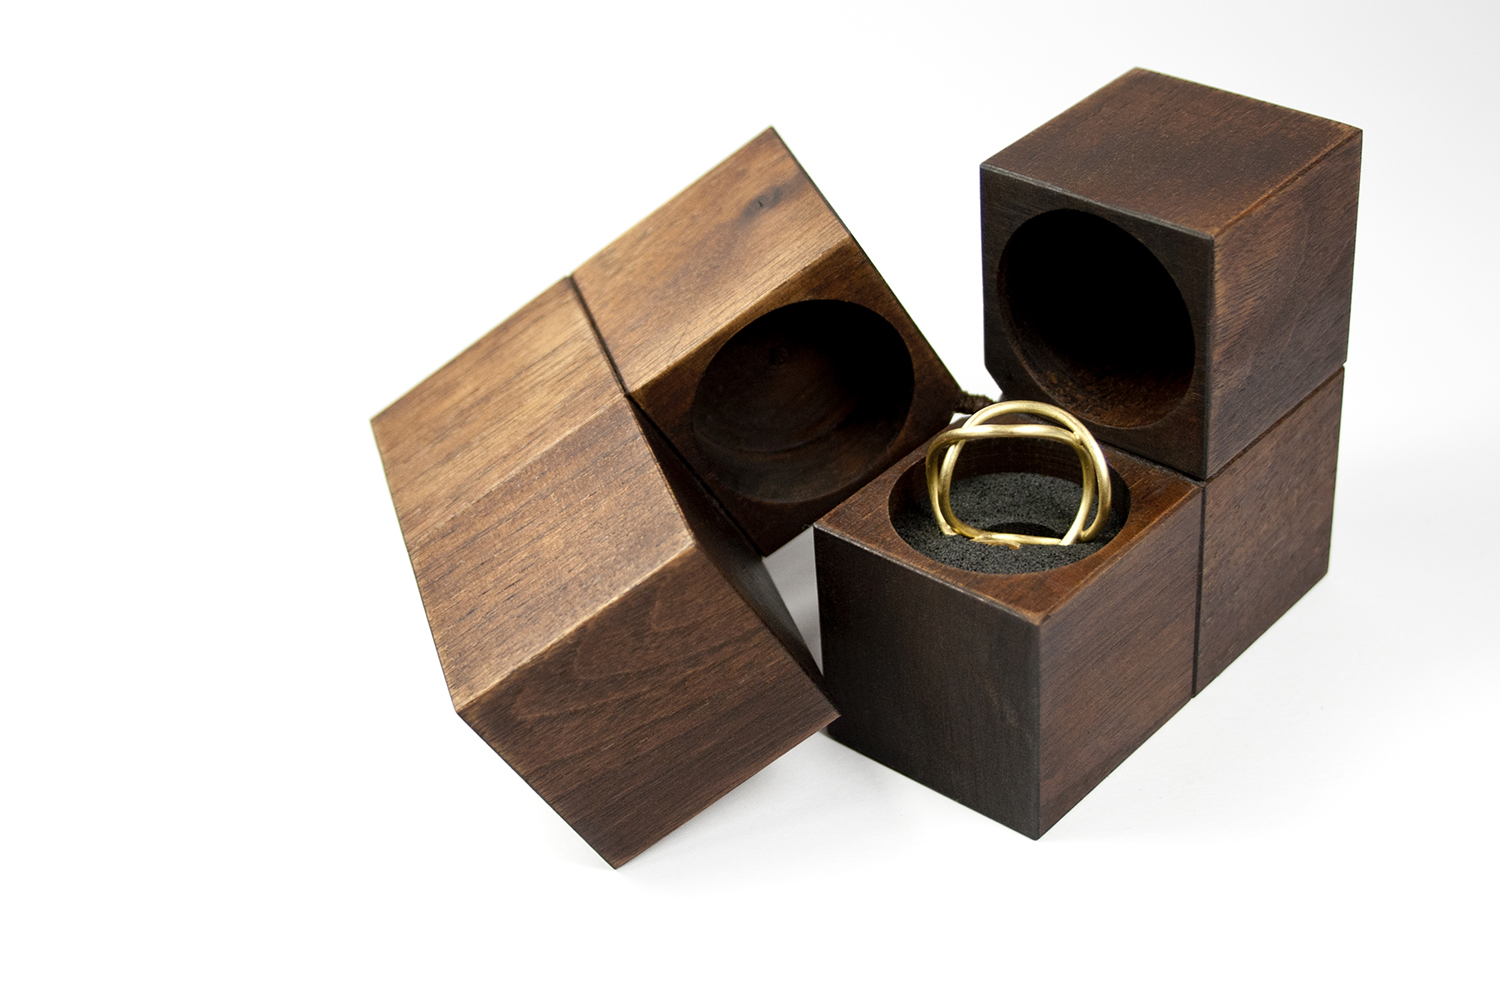 One Or More KLOTZ Packagings Represent Creative Modular Design Elements For Showcasing Jewellery And Rings On Display At Fairs